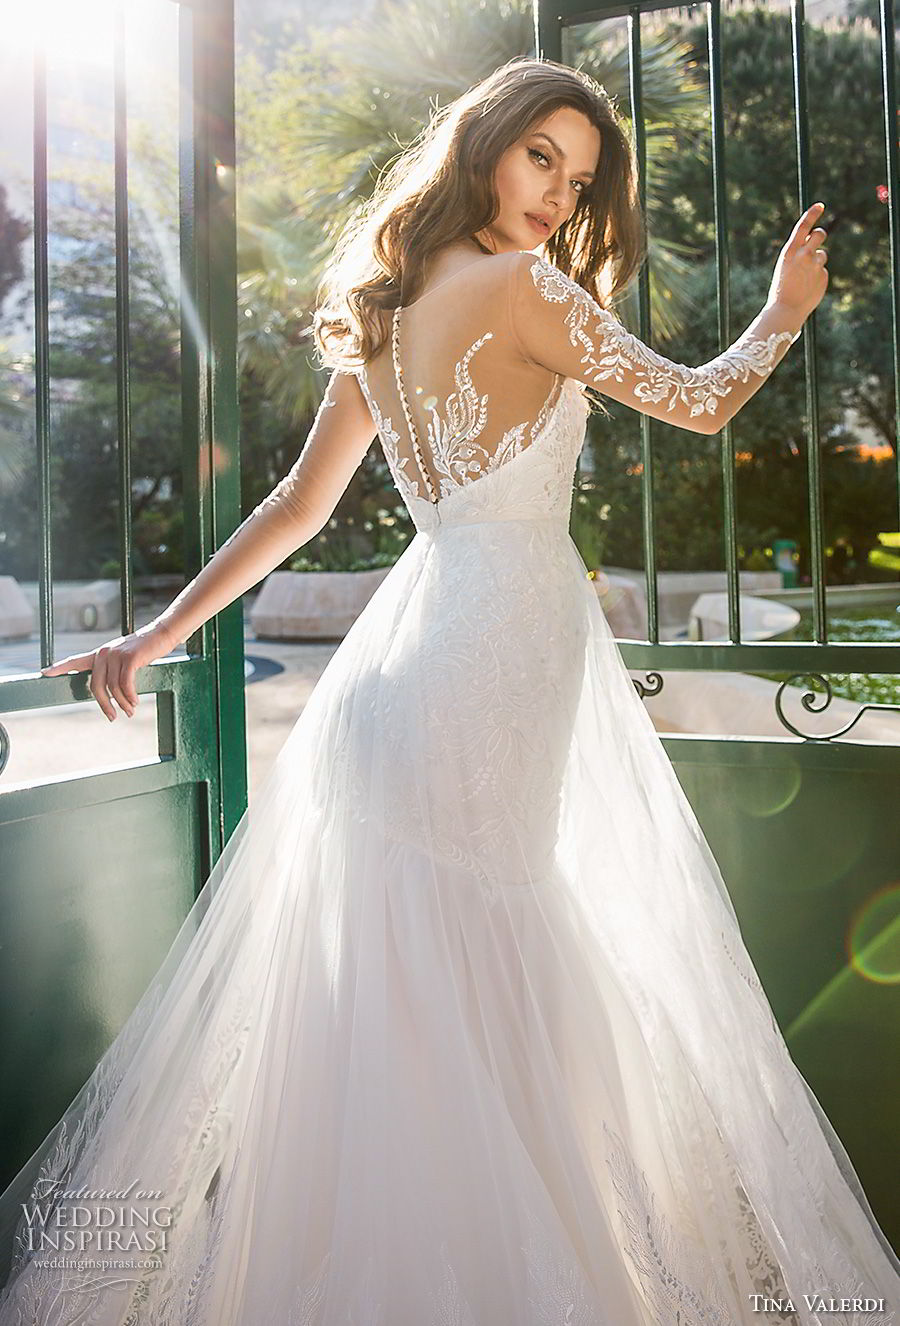 tina valerdi 2019 bridal long sleeves illusion v sweetheart neckline full embellishment romantic a line wedding dress sheer button back chapel train (1) zbv